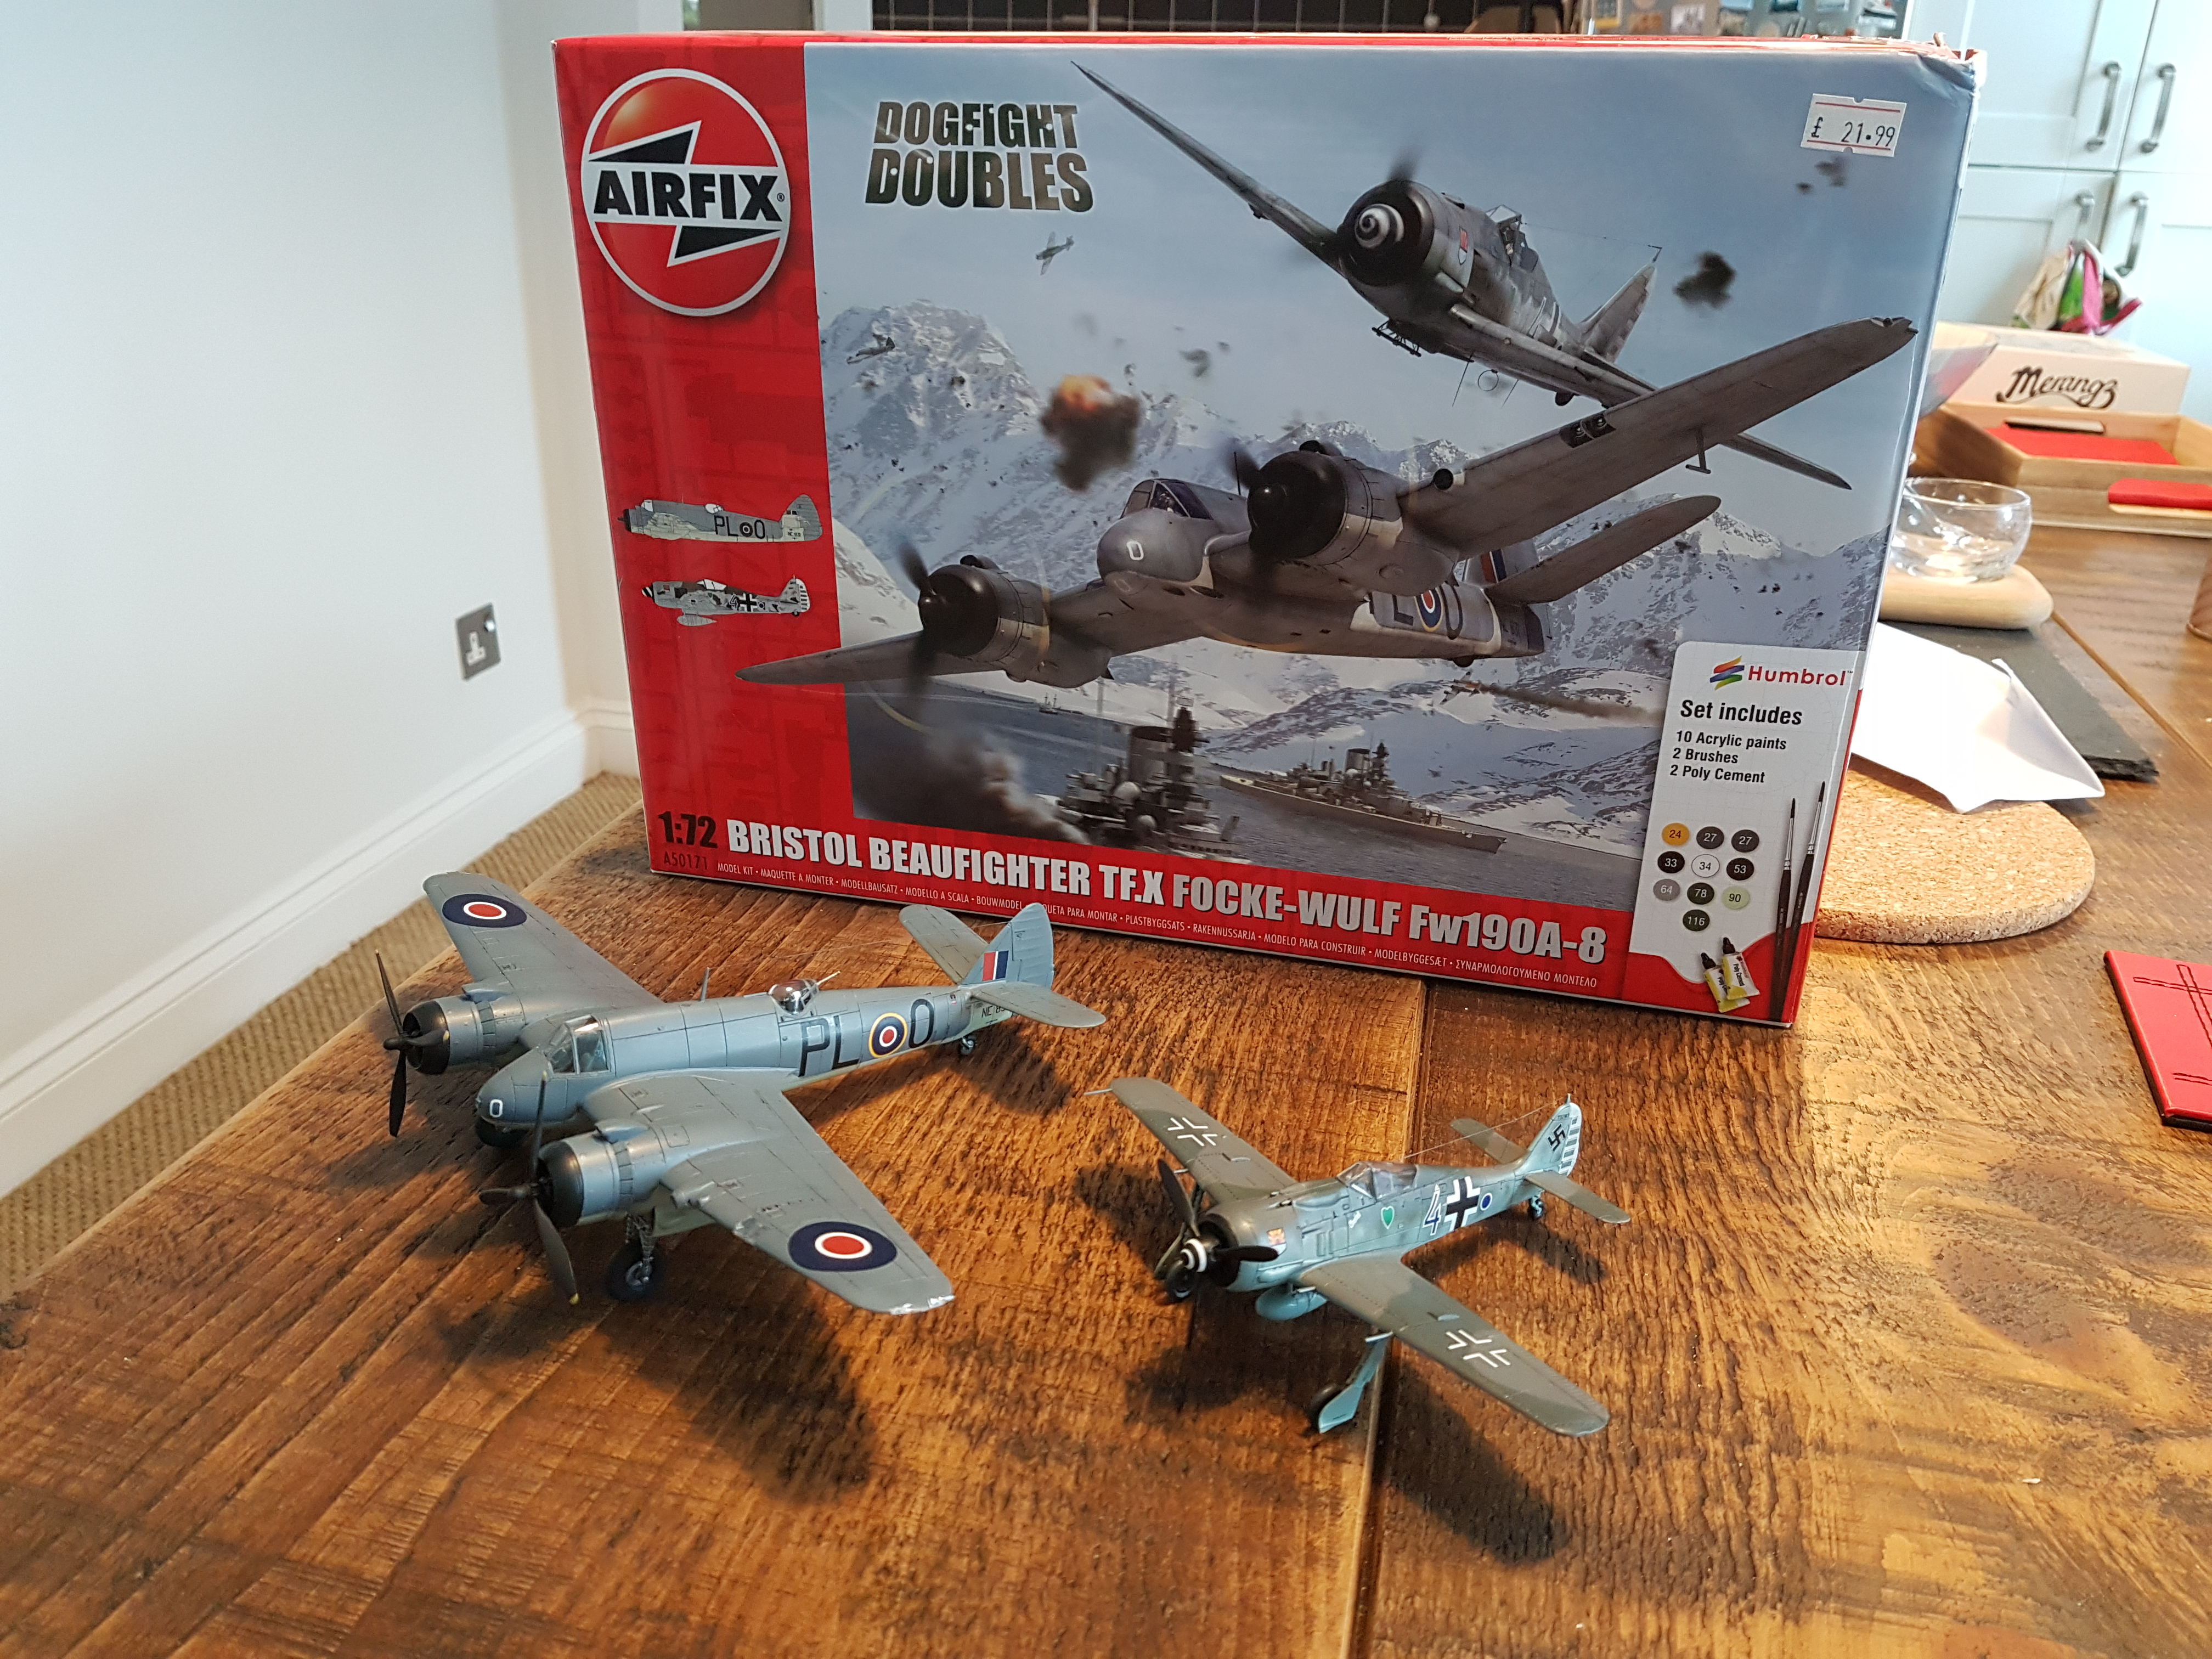 Airfix Dogfight Double - Beaufighter & Fw190 - Ready for Inspection